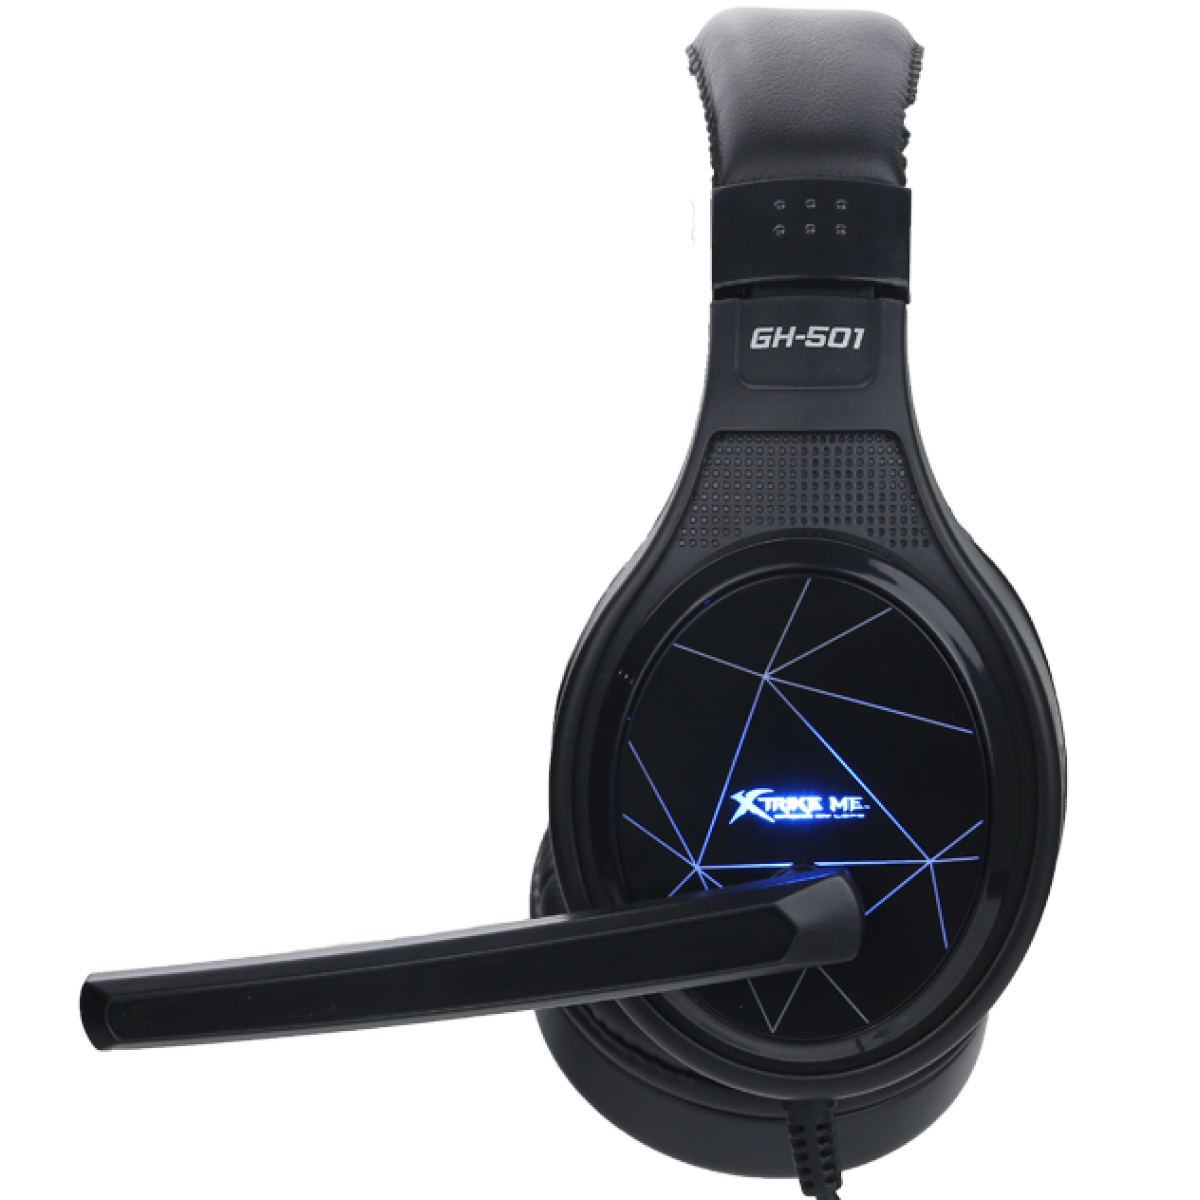 Headset Gamer XTRIKE-ME GH-501, Black/Blue, Backlit, GH501BK